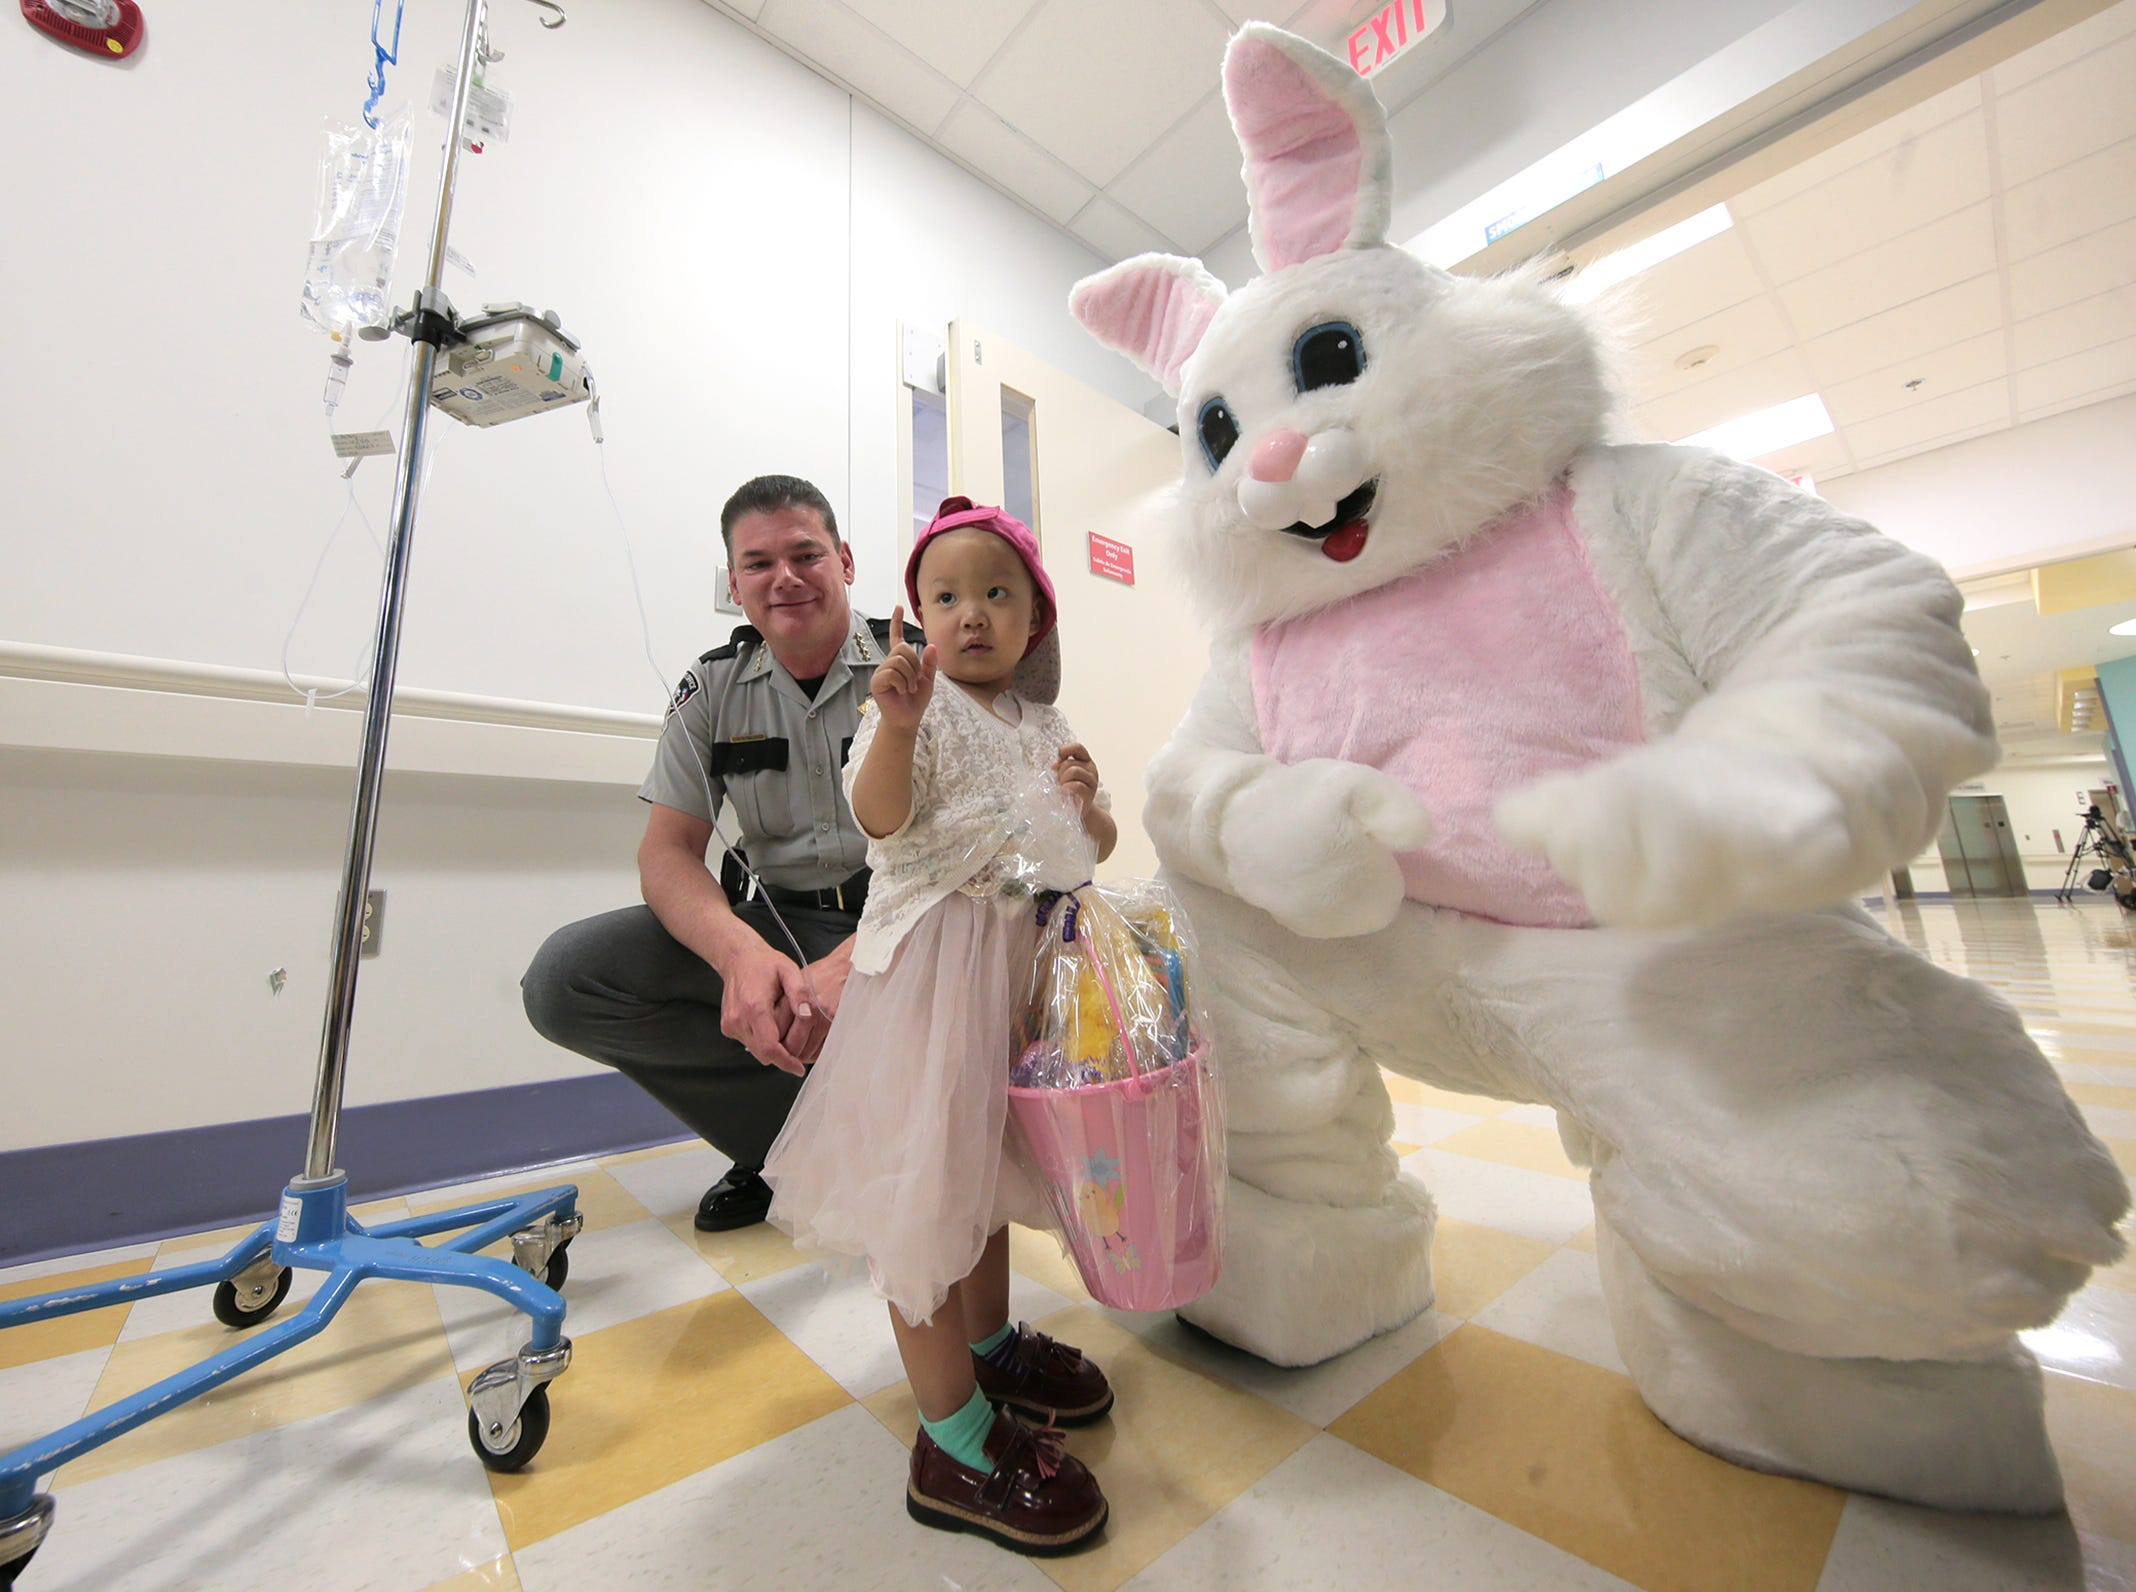 El Paso Children's Hospital patient Nicole Liu, 2, is given an Easter basket from El Paso County Sheriff Richard Wiles and the Easter Bunny Thursday.